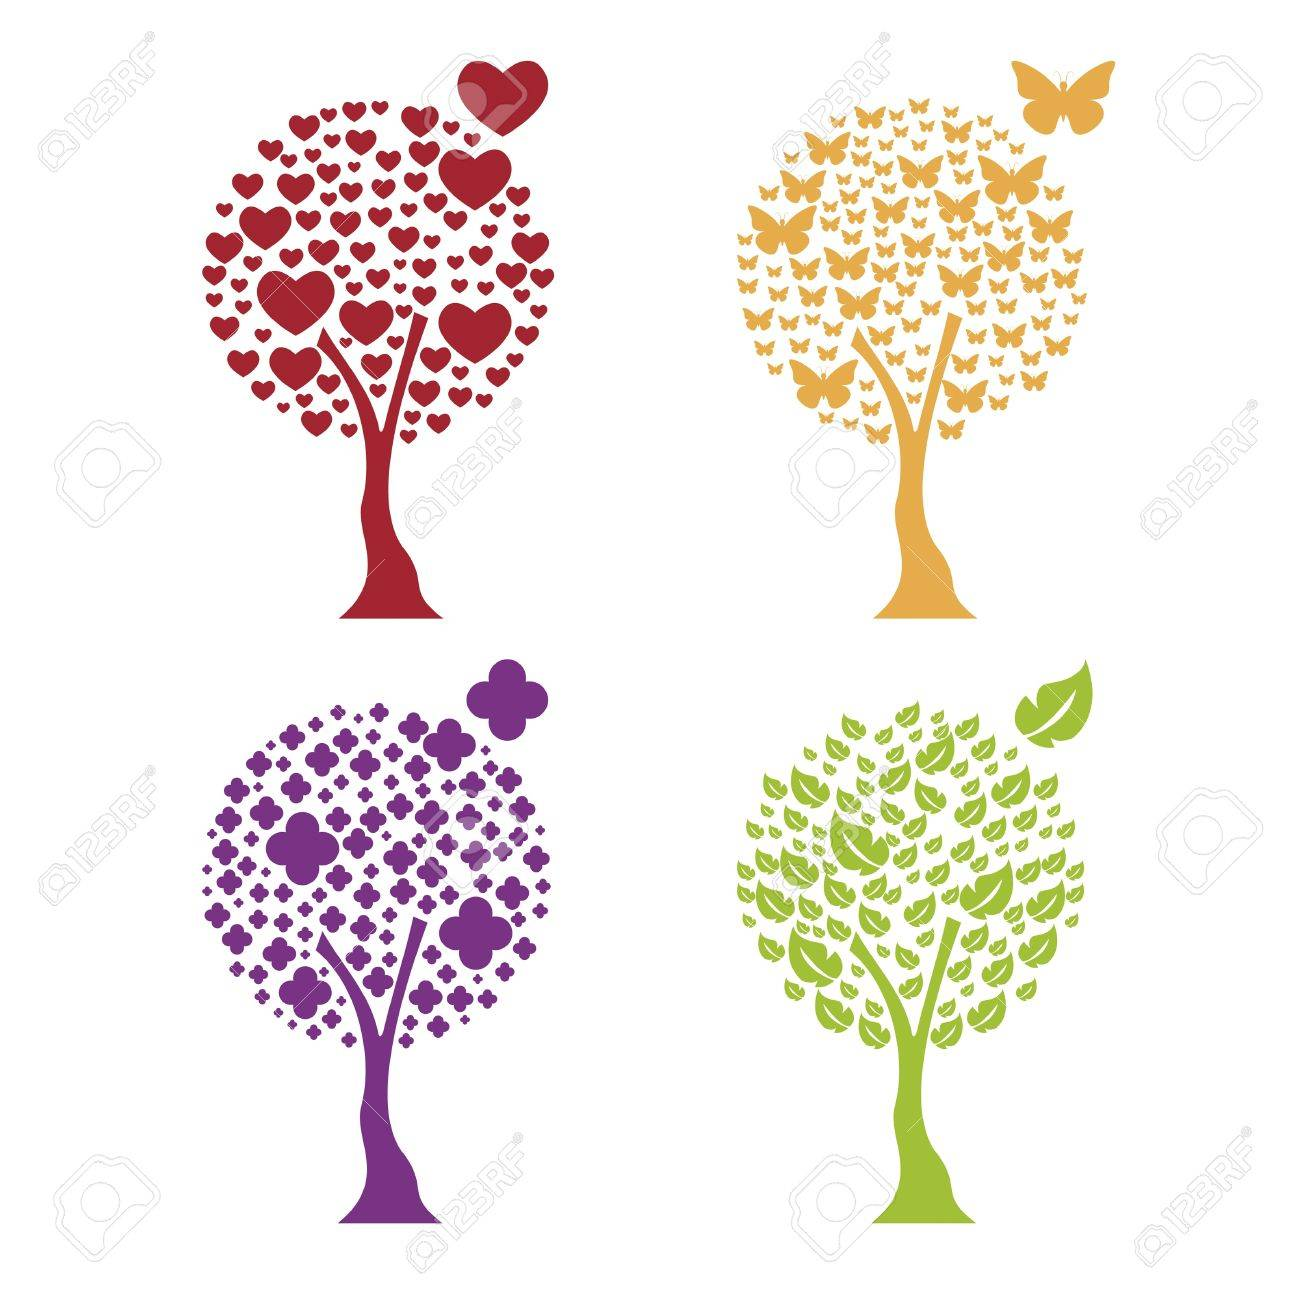 Trees with four elements: heart, butterfly, flower, leaf Stock Vector - 9871529